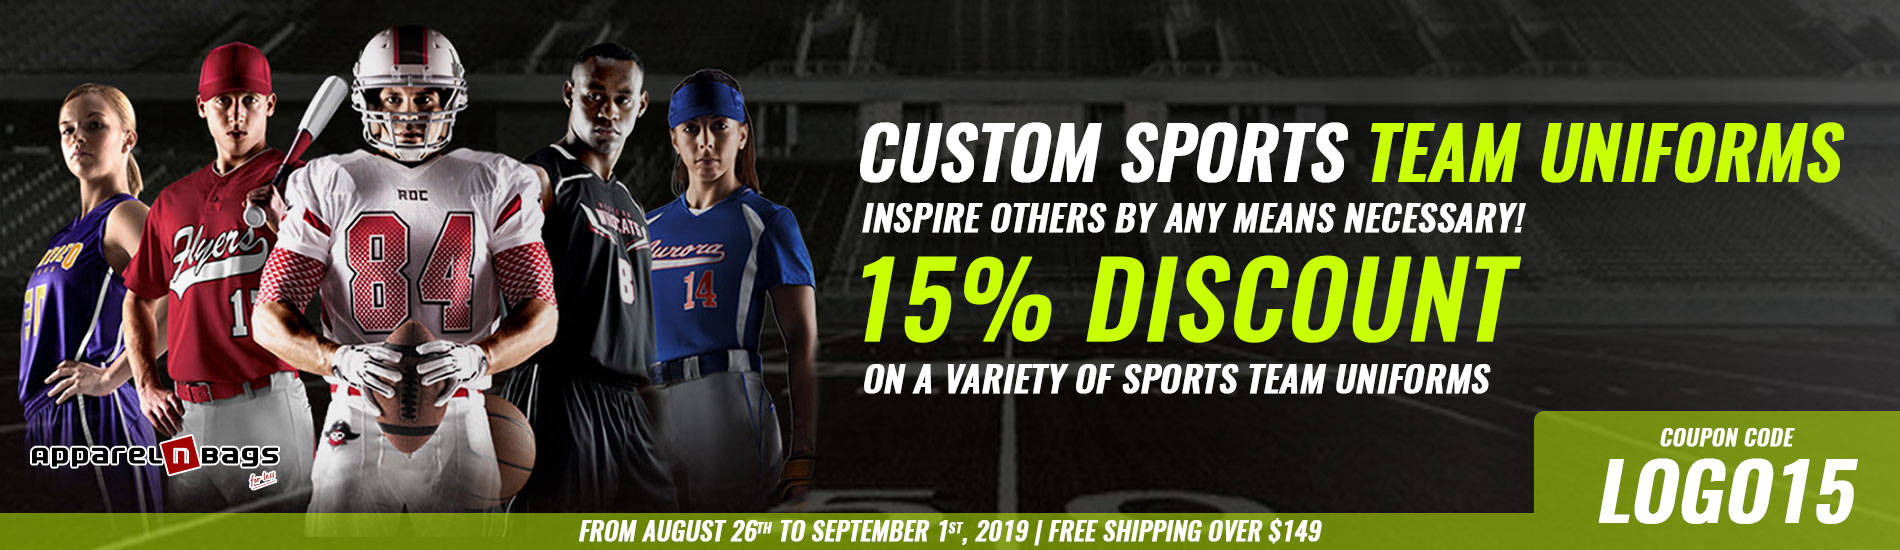 Custom Sports Team Uniforms